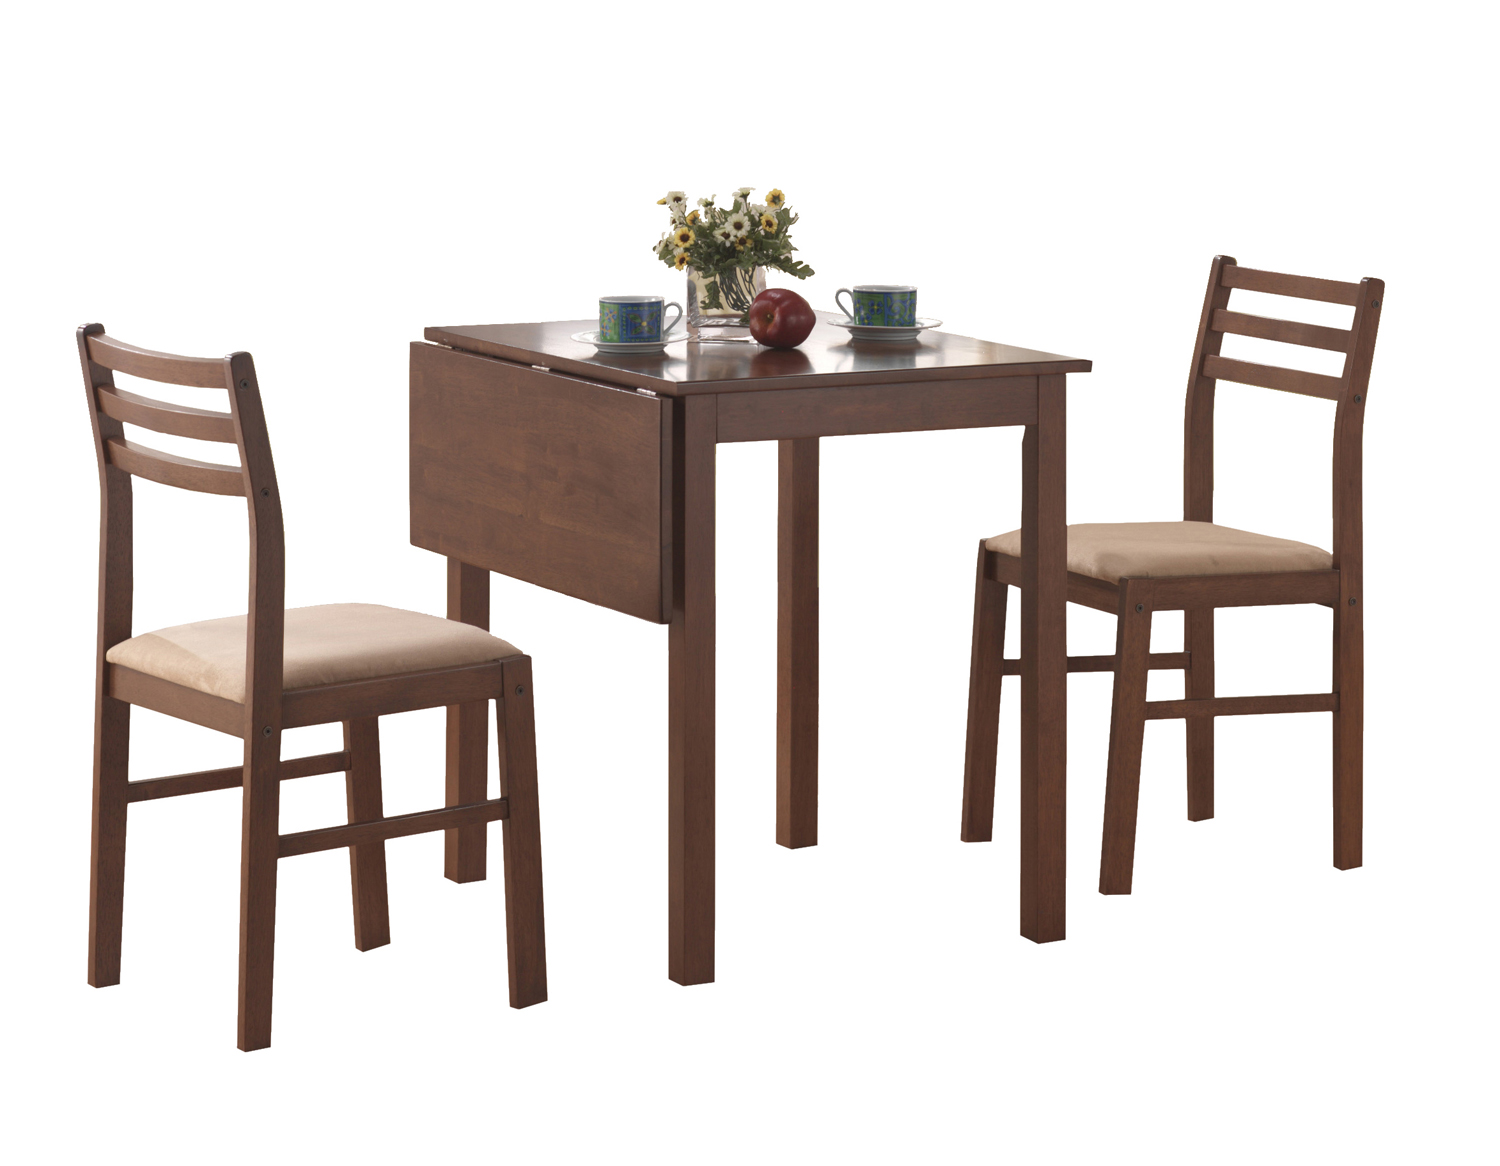 Dining Set - 3 Pieces Set / Walnut Solid-Top Drop Leaf